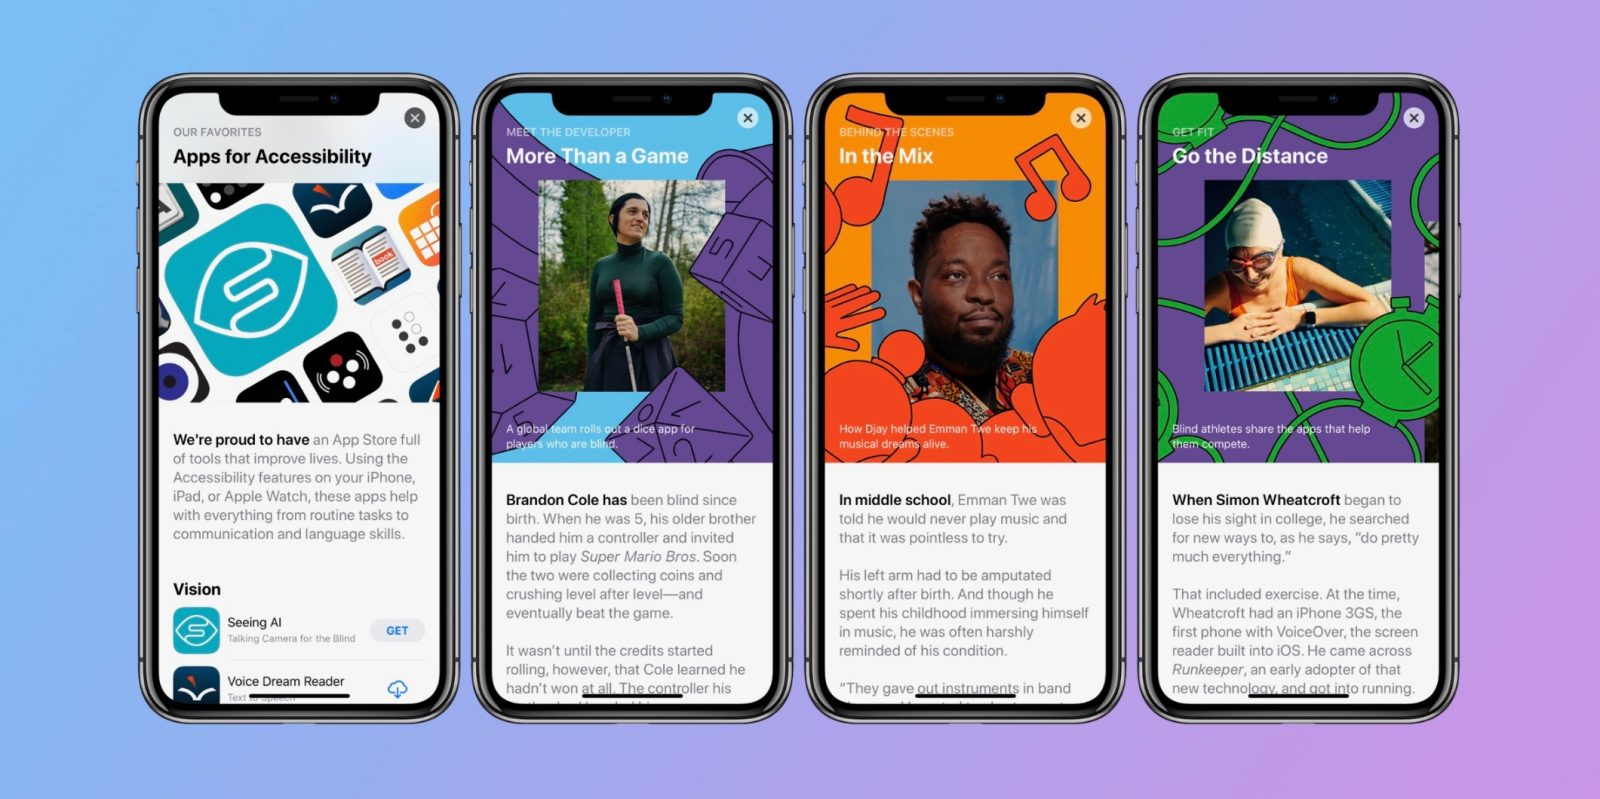 Apple celebrates Global Accessibility Awareness Day with top featured apps, user and developer profiles, more